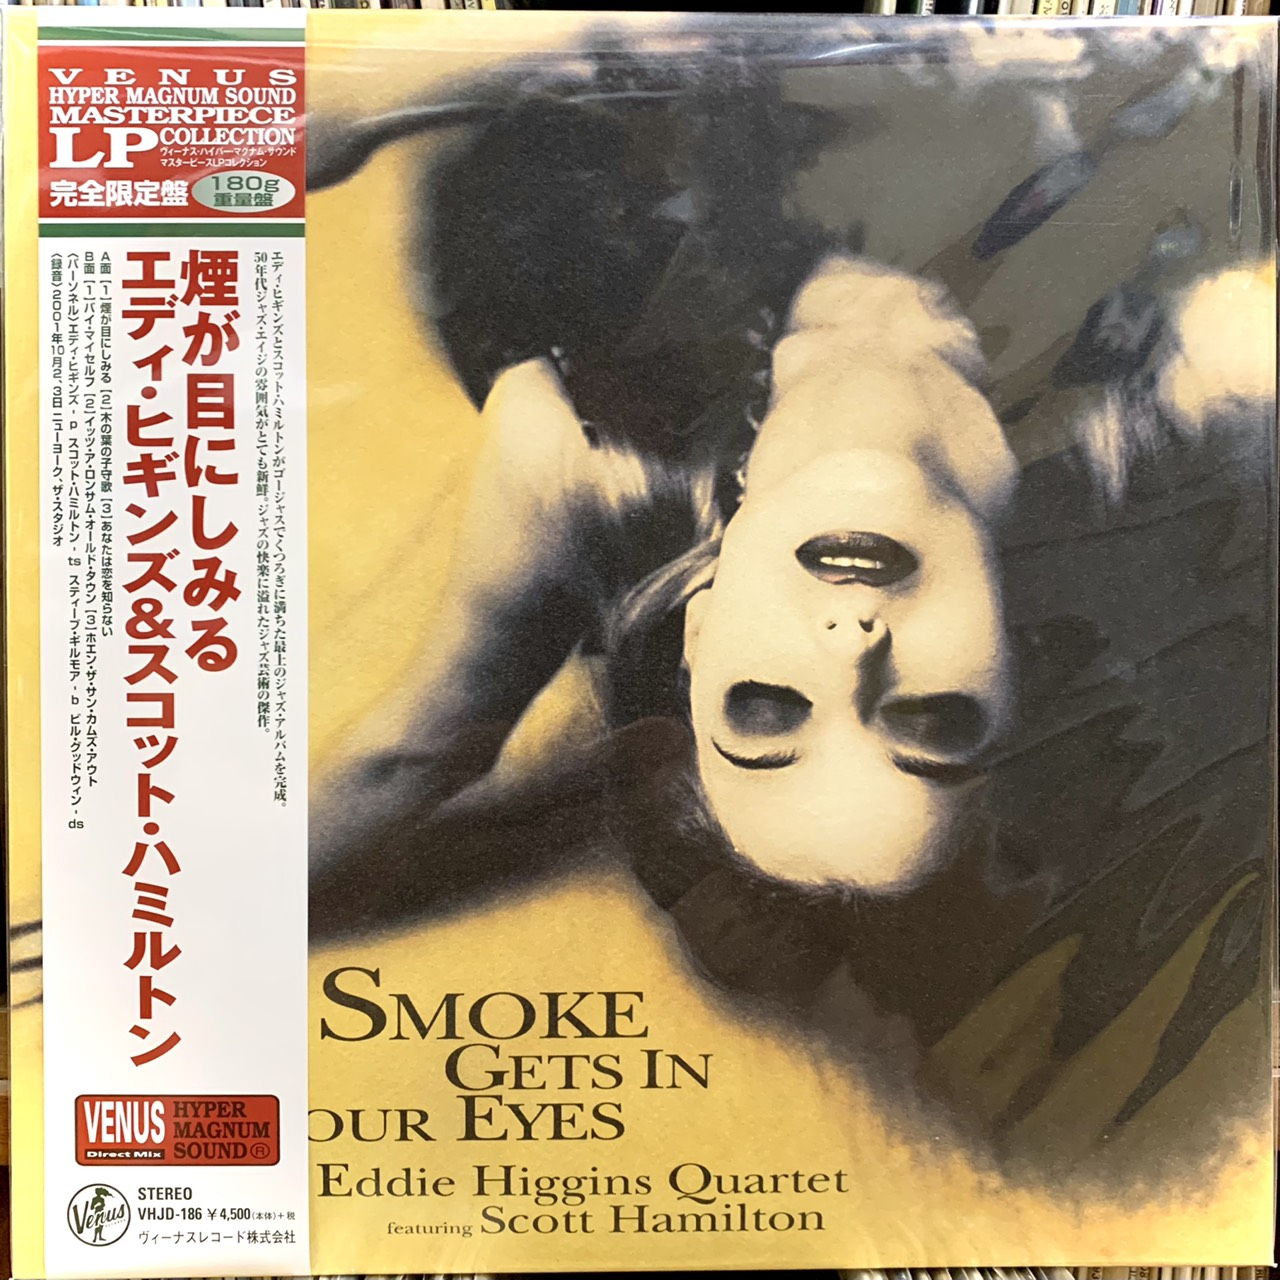 dia-than-vinyl-smoke-gets-in-your-eyes